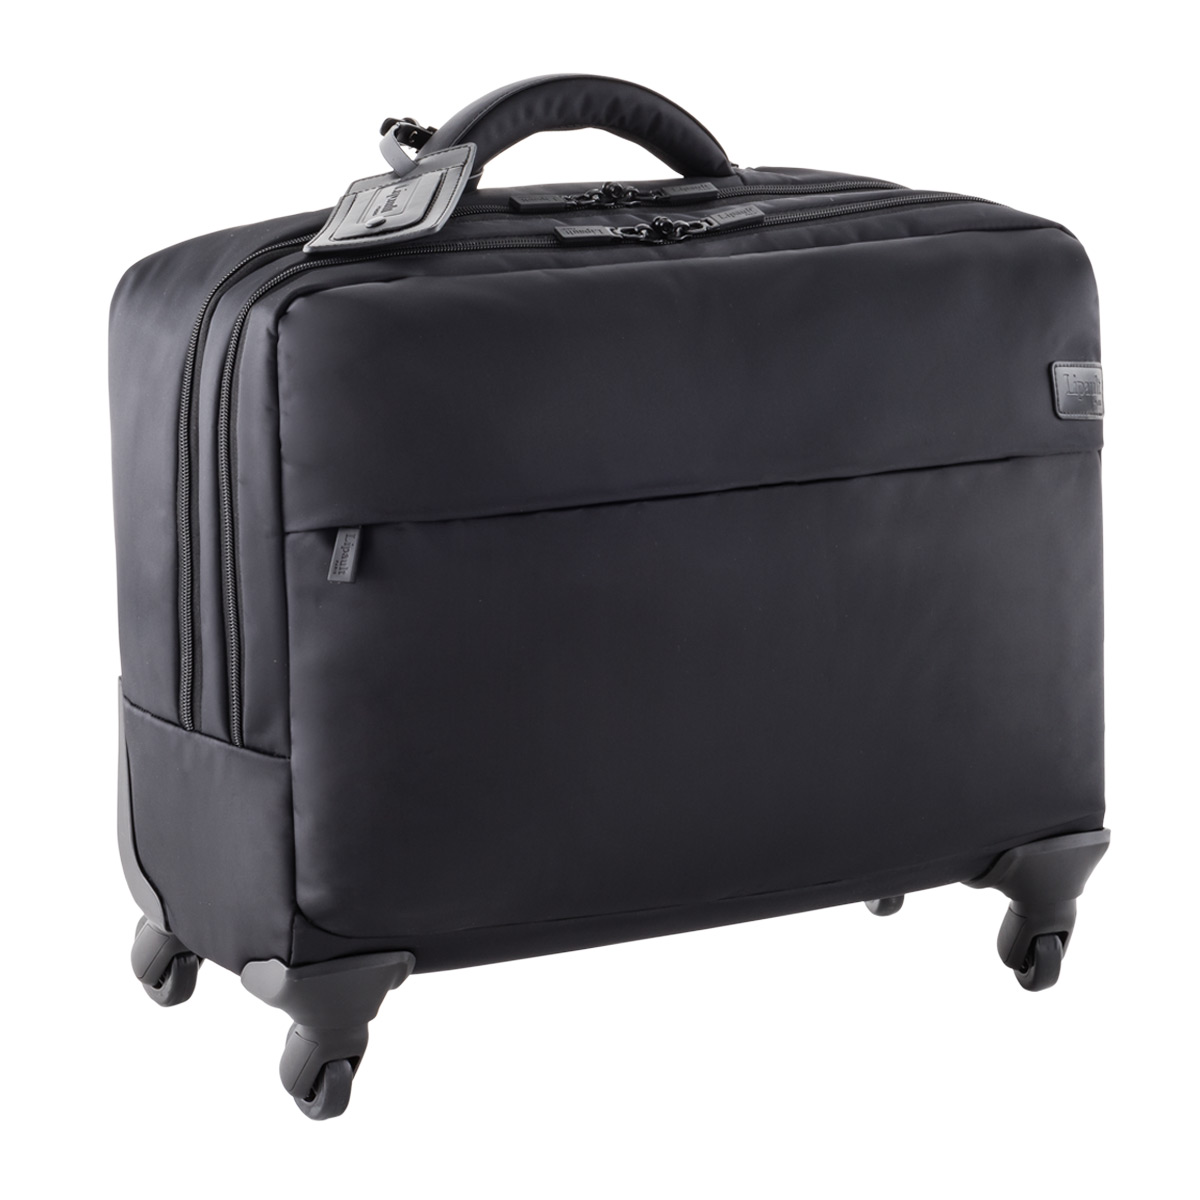 Paris 4-Wheeled Business Case